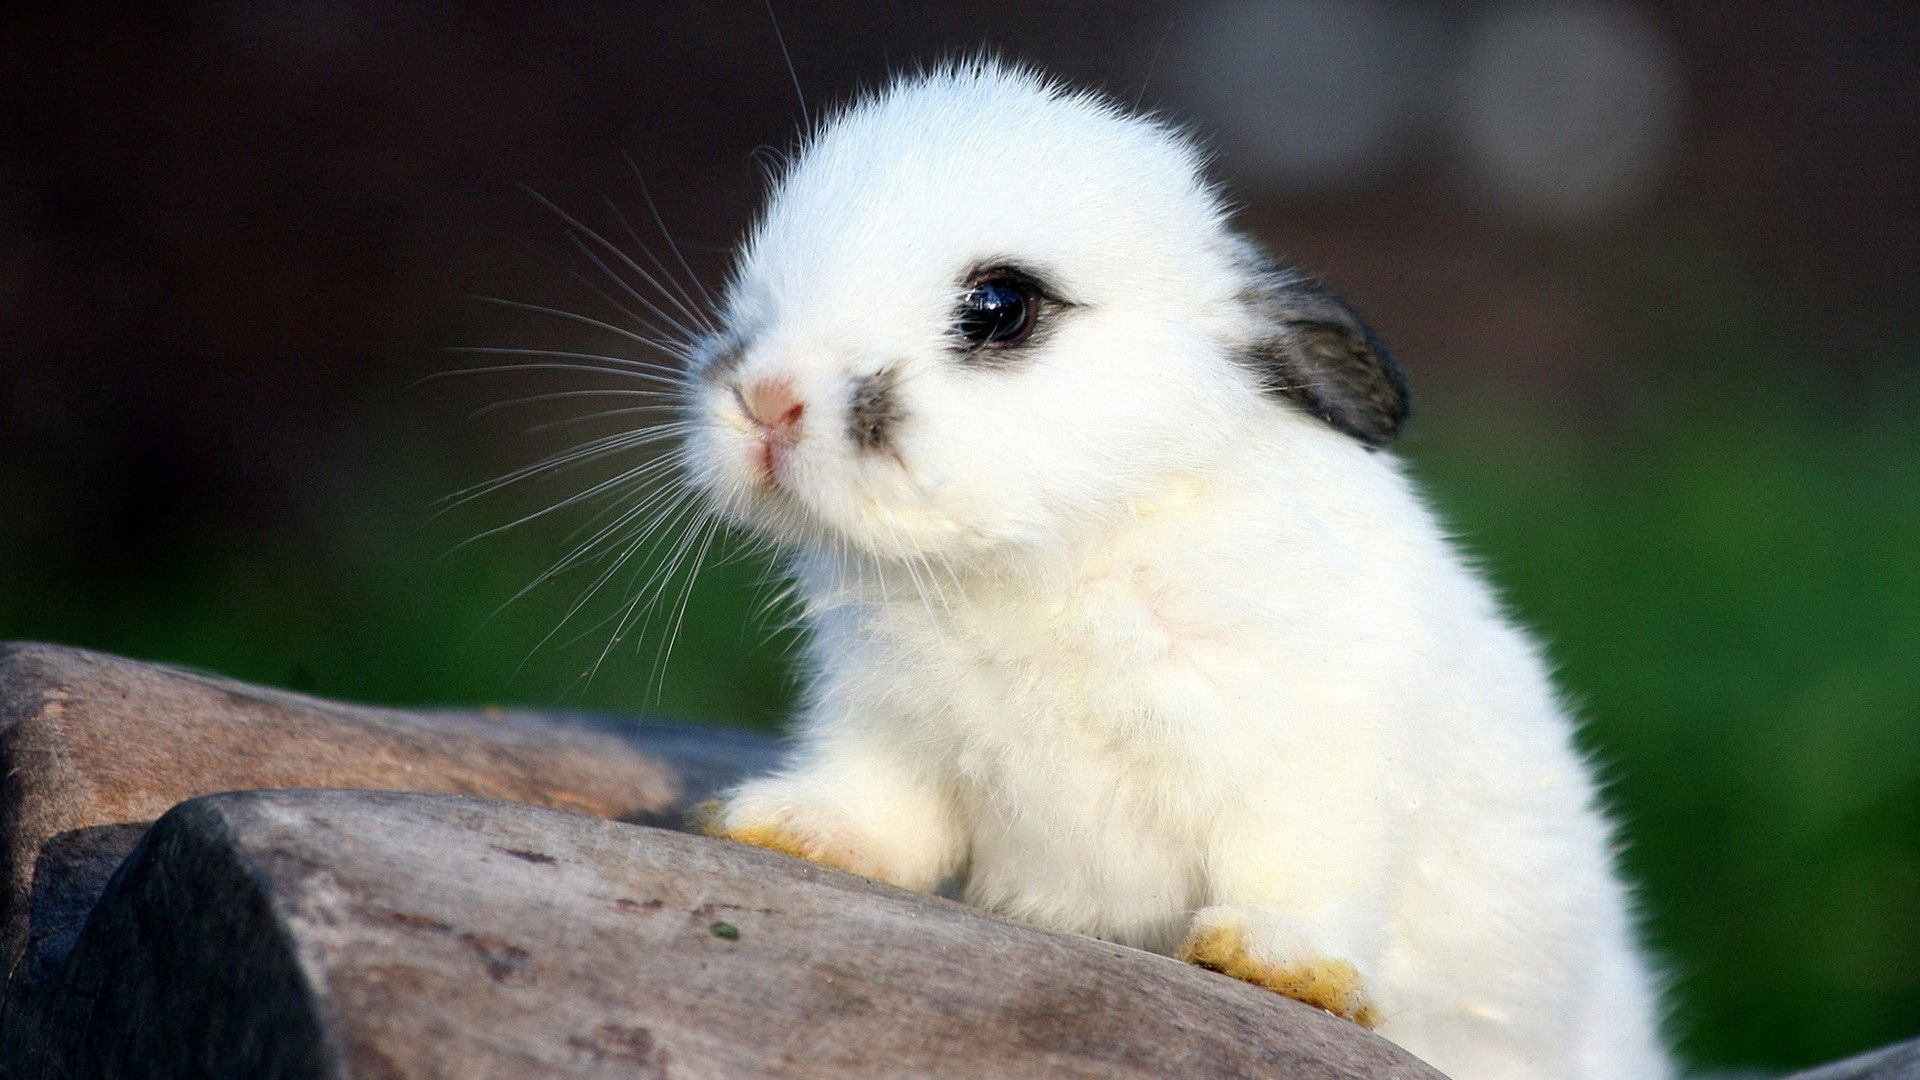 Download mobile wallpaper Animals, Muzzle, Spotted, Spotty, Ears, Fear, Rabbit for free.